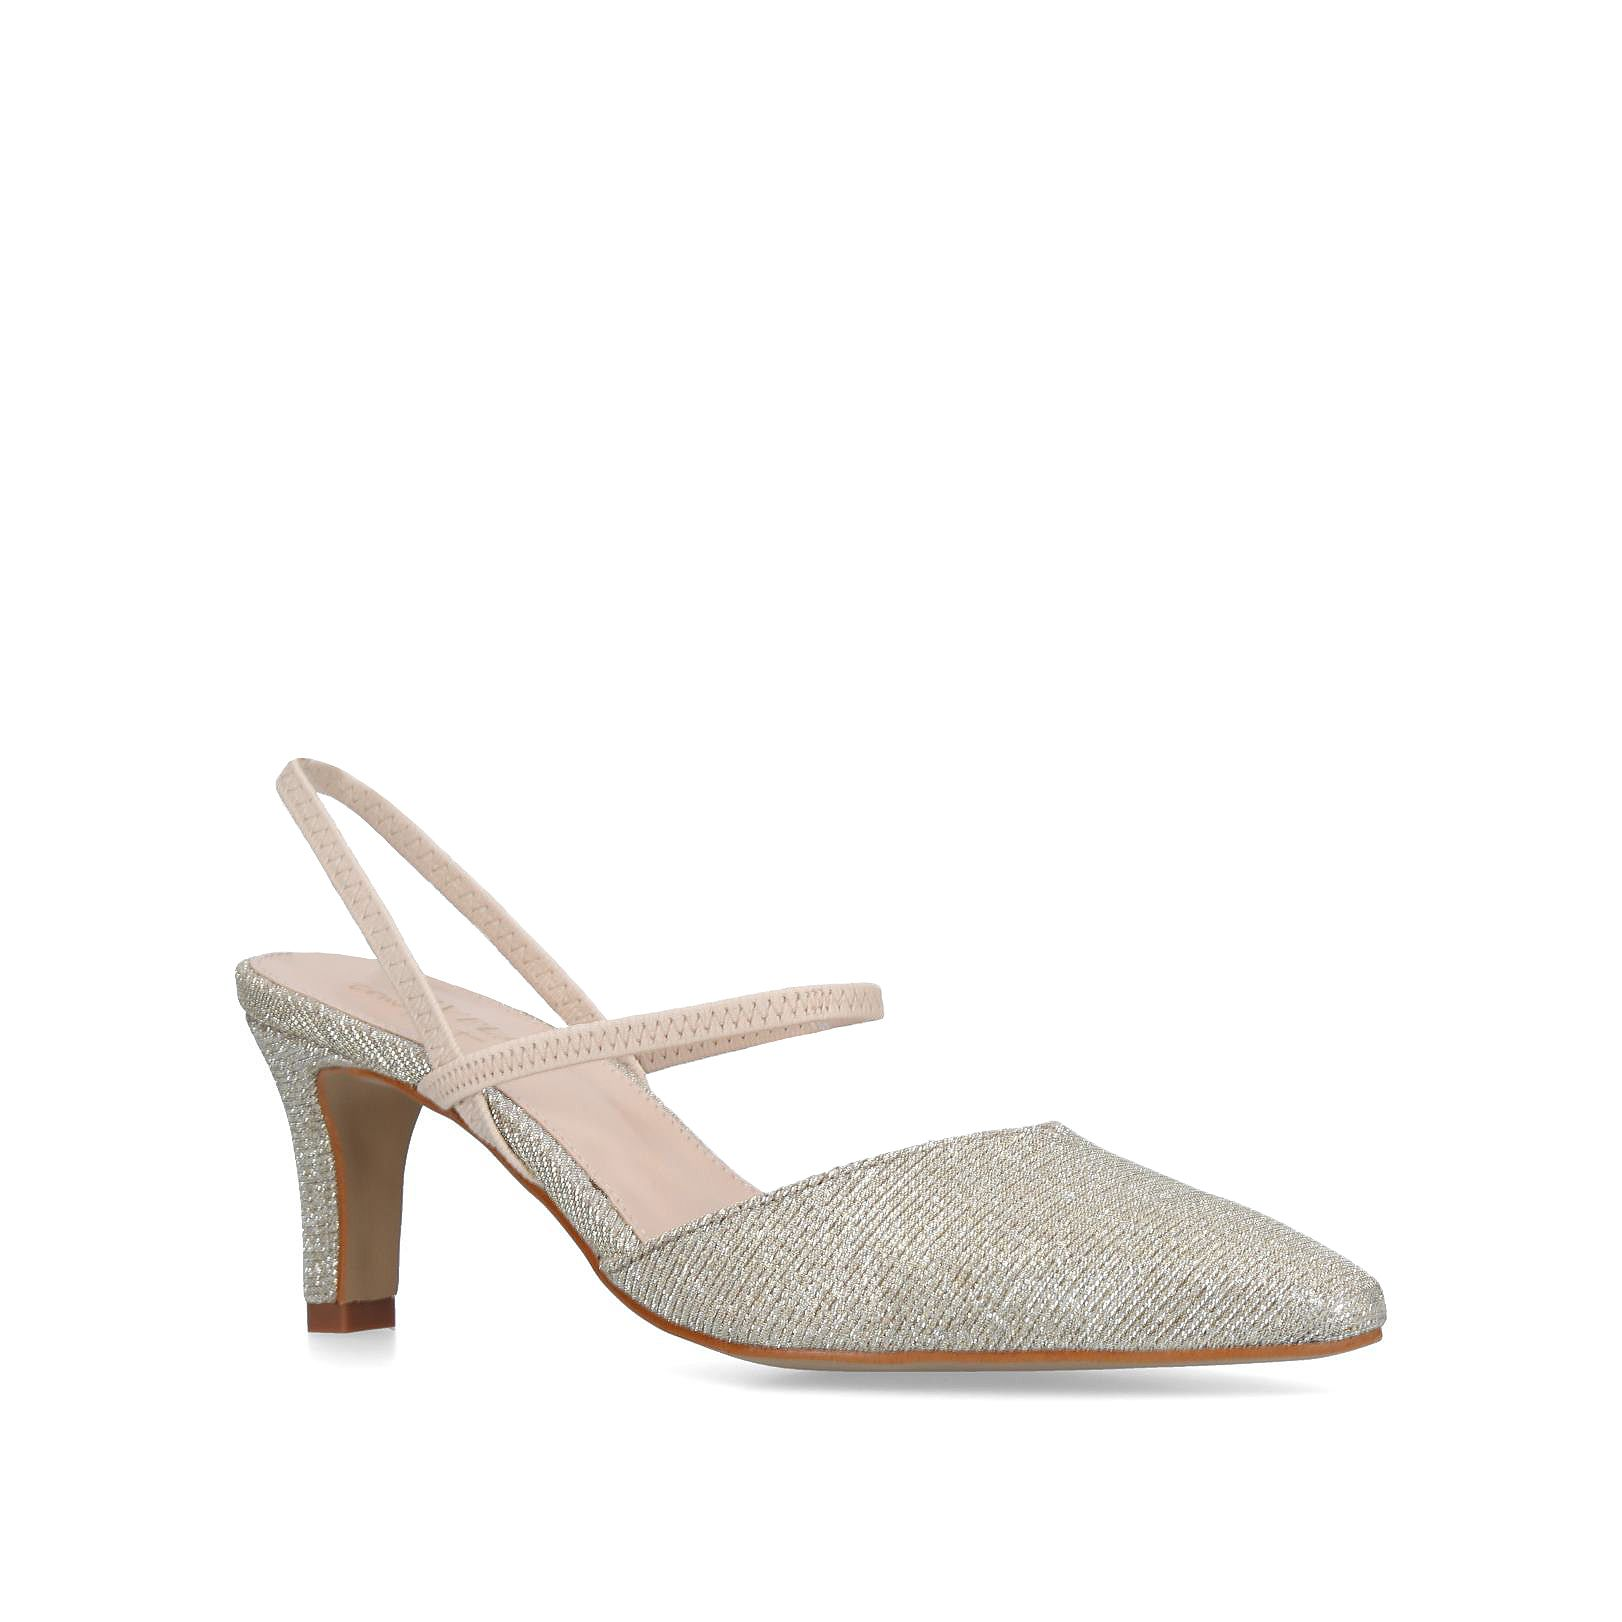 Carvela Comfort Asya Courts, Gold